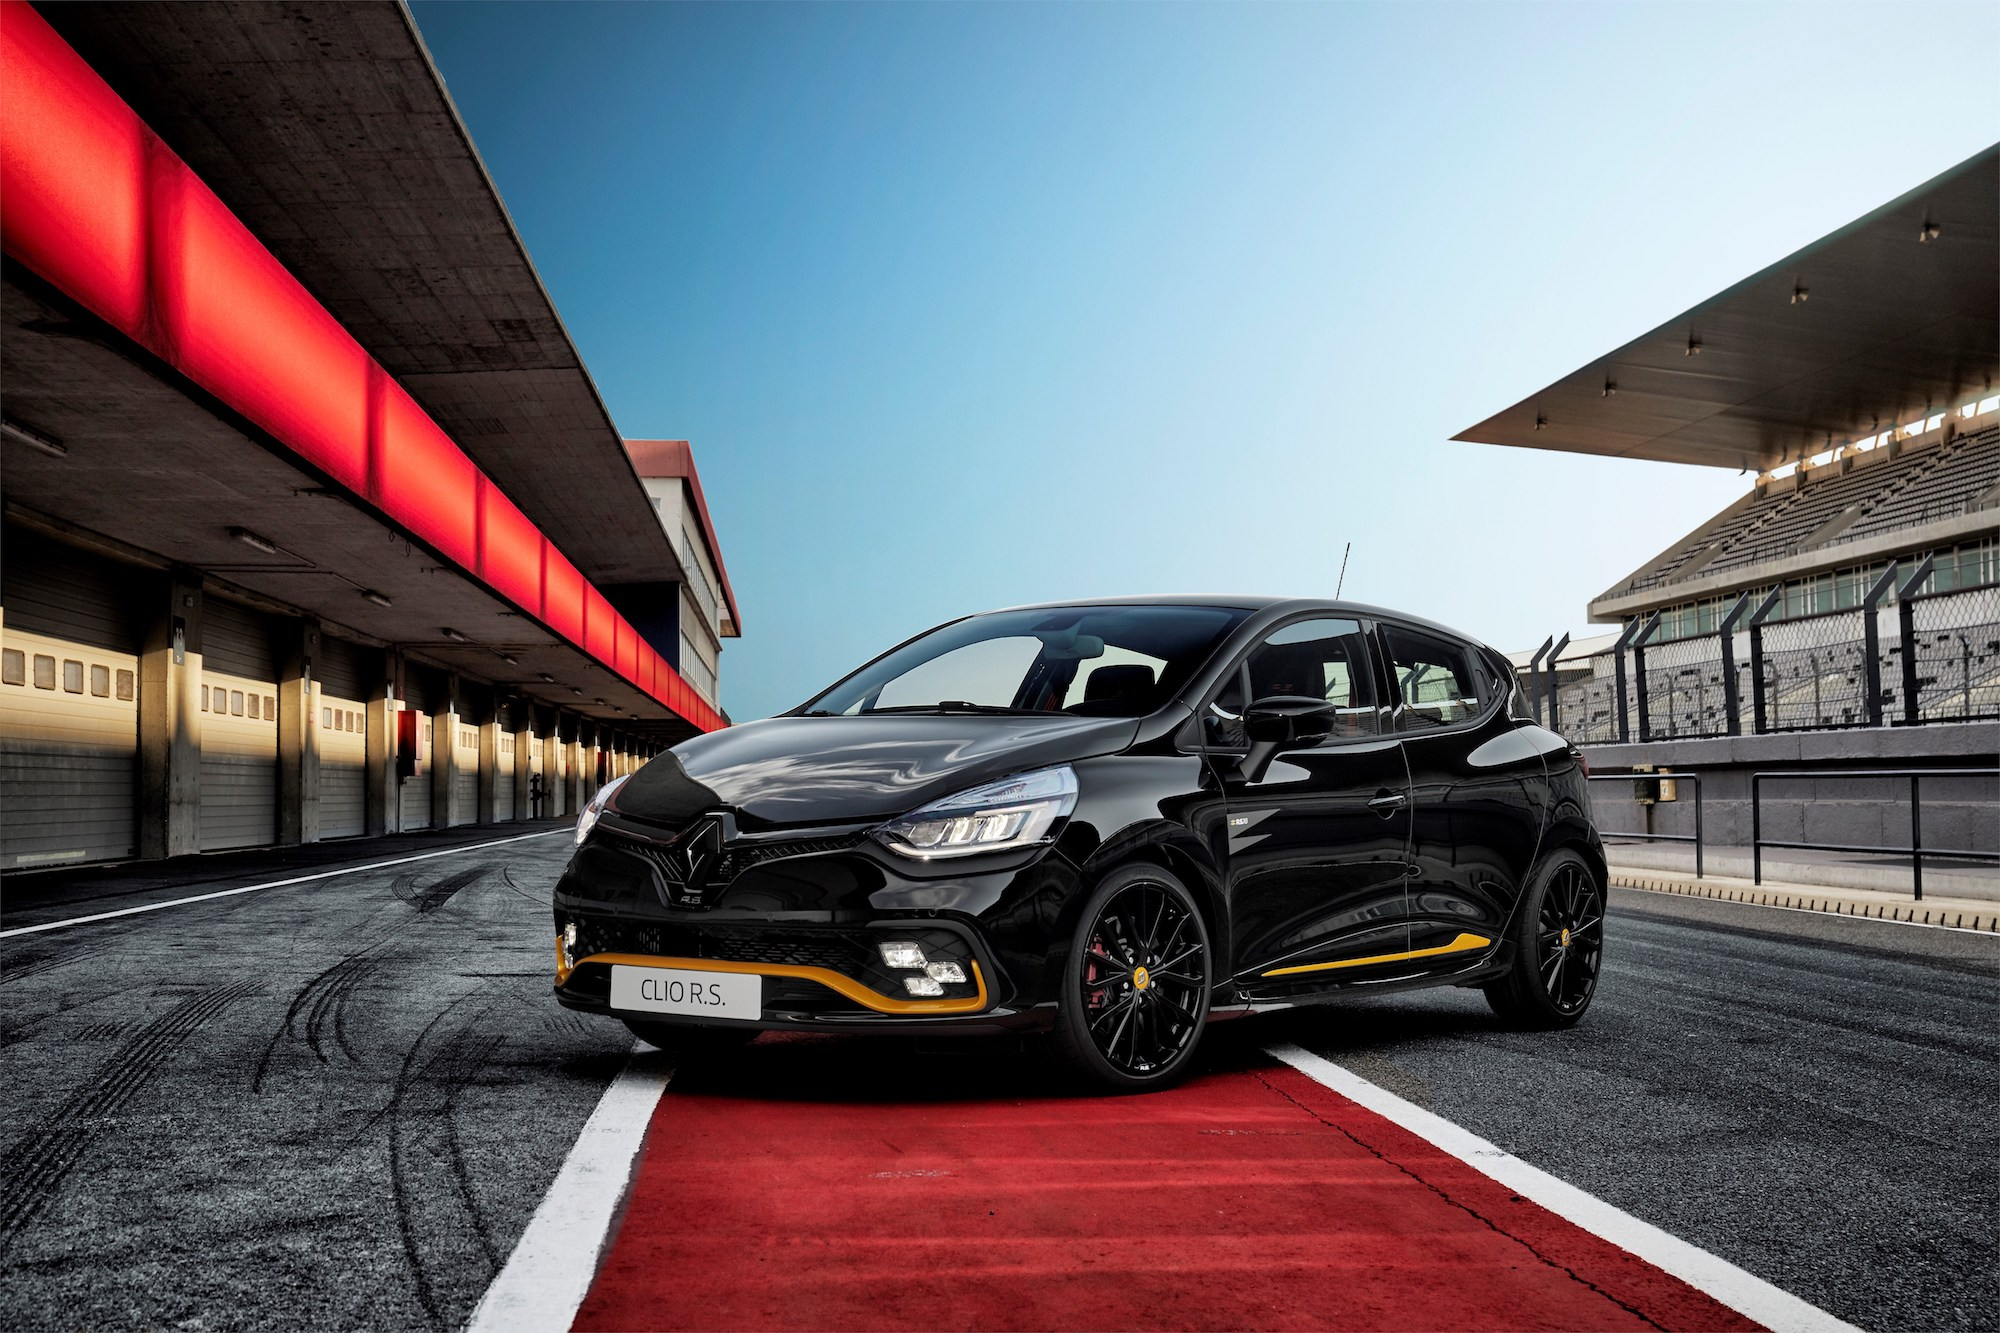 Renault says new Clio RS 18 has